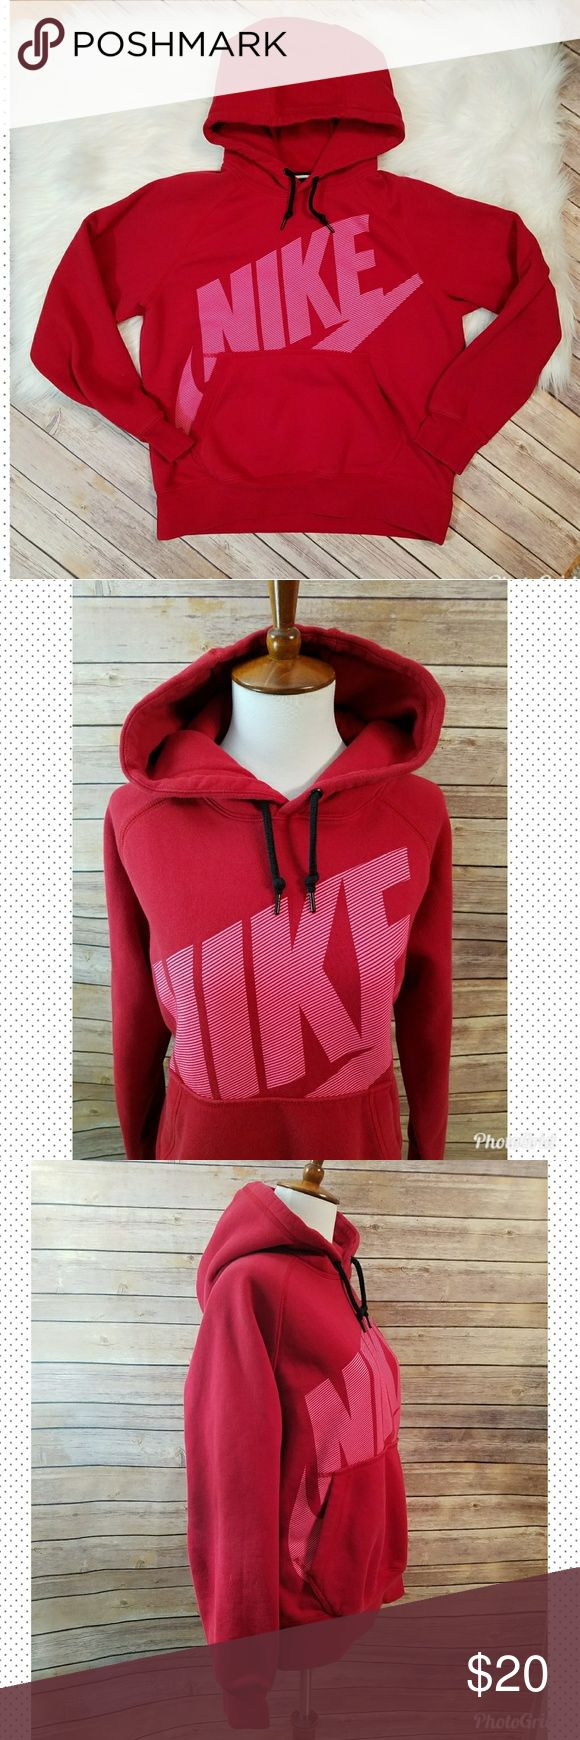 Nike pullover hoodie Size medium Red & pink Has 1 light itty bitty spot not noticeable unless inspecting closely Nike Tops Sweatshirts & Hoodies